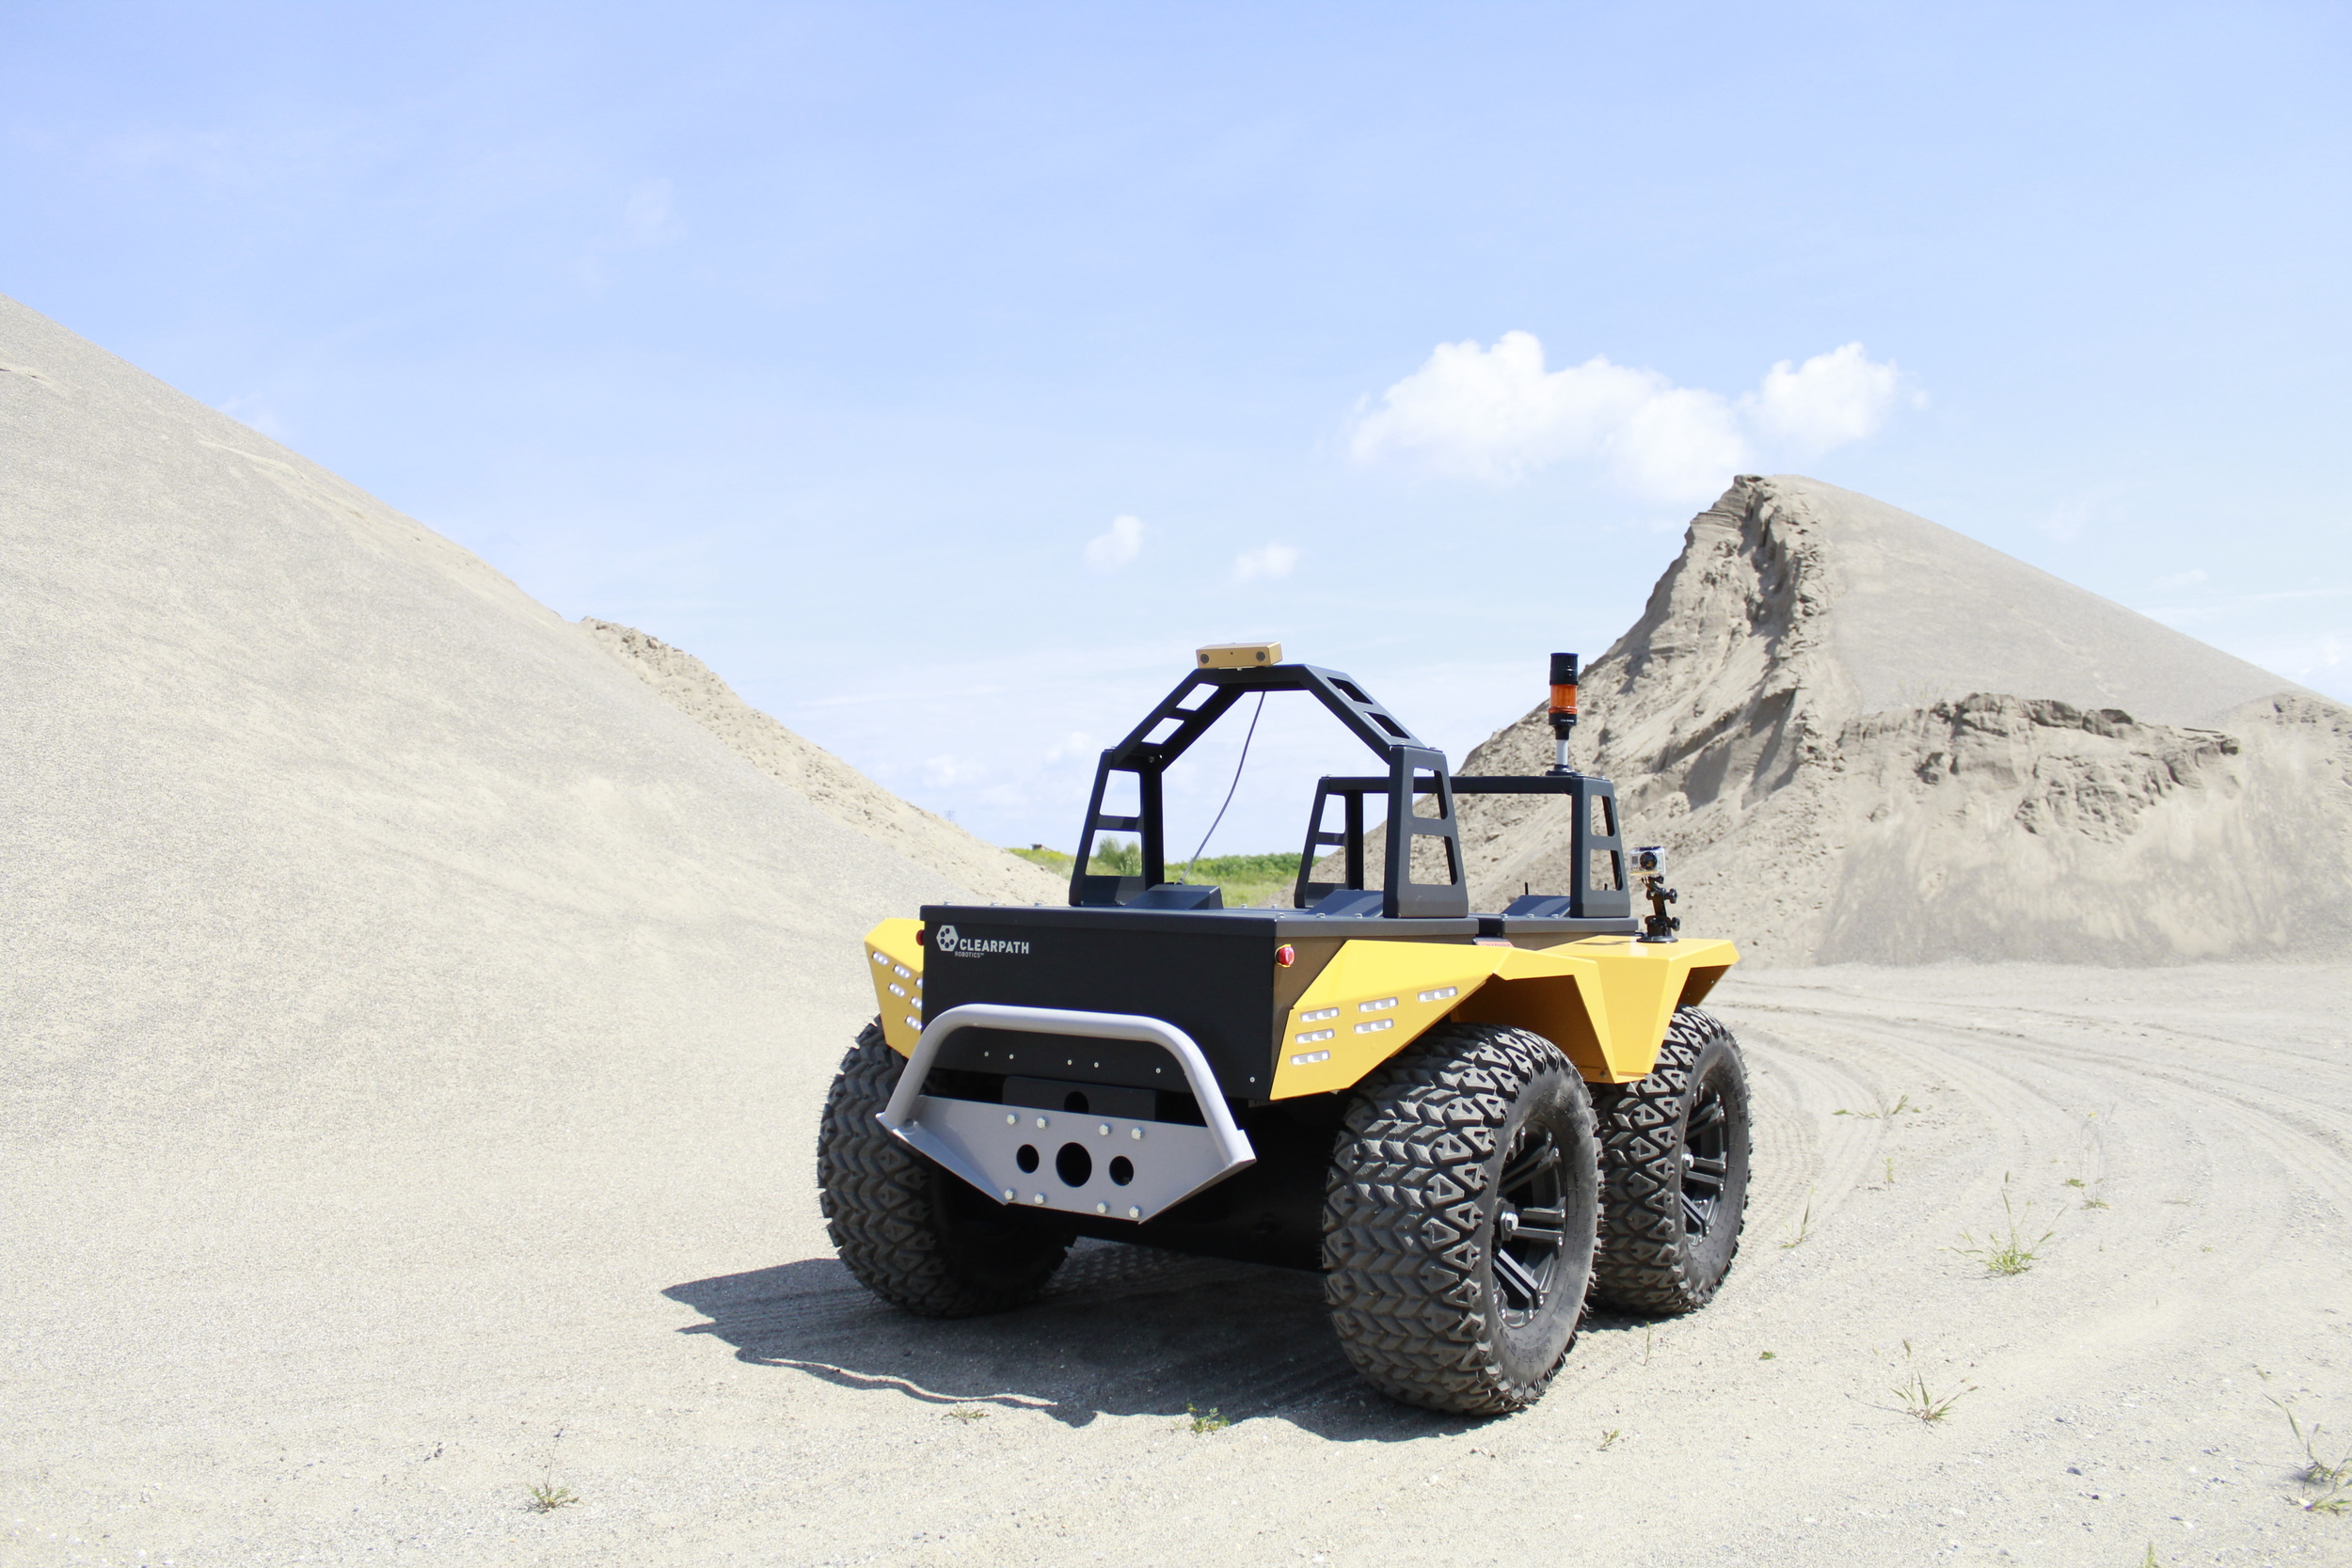 One of Clearpath's  unmanned ground vehicles - the Grizzly.